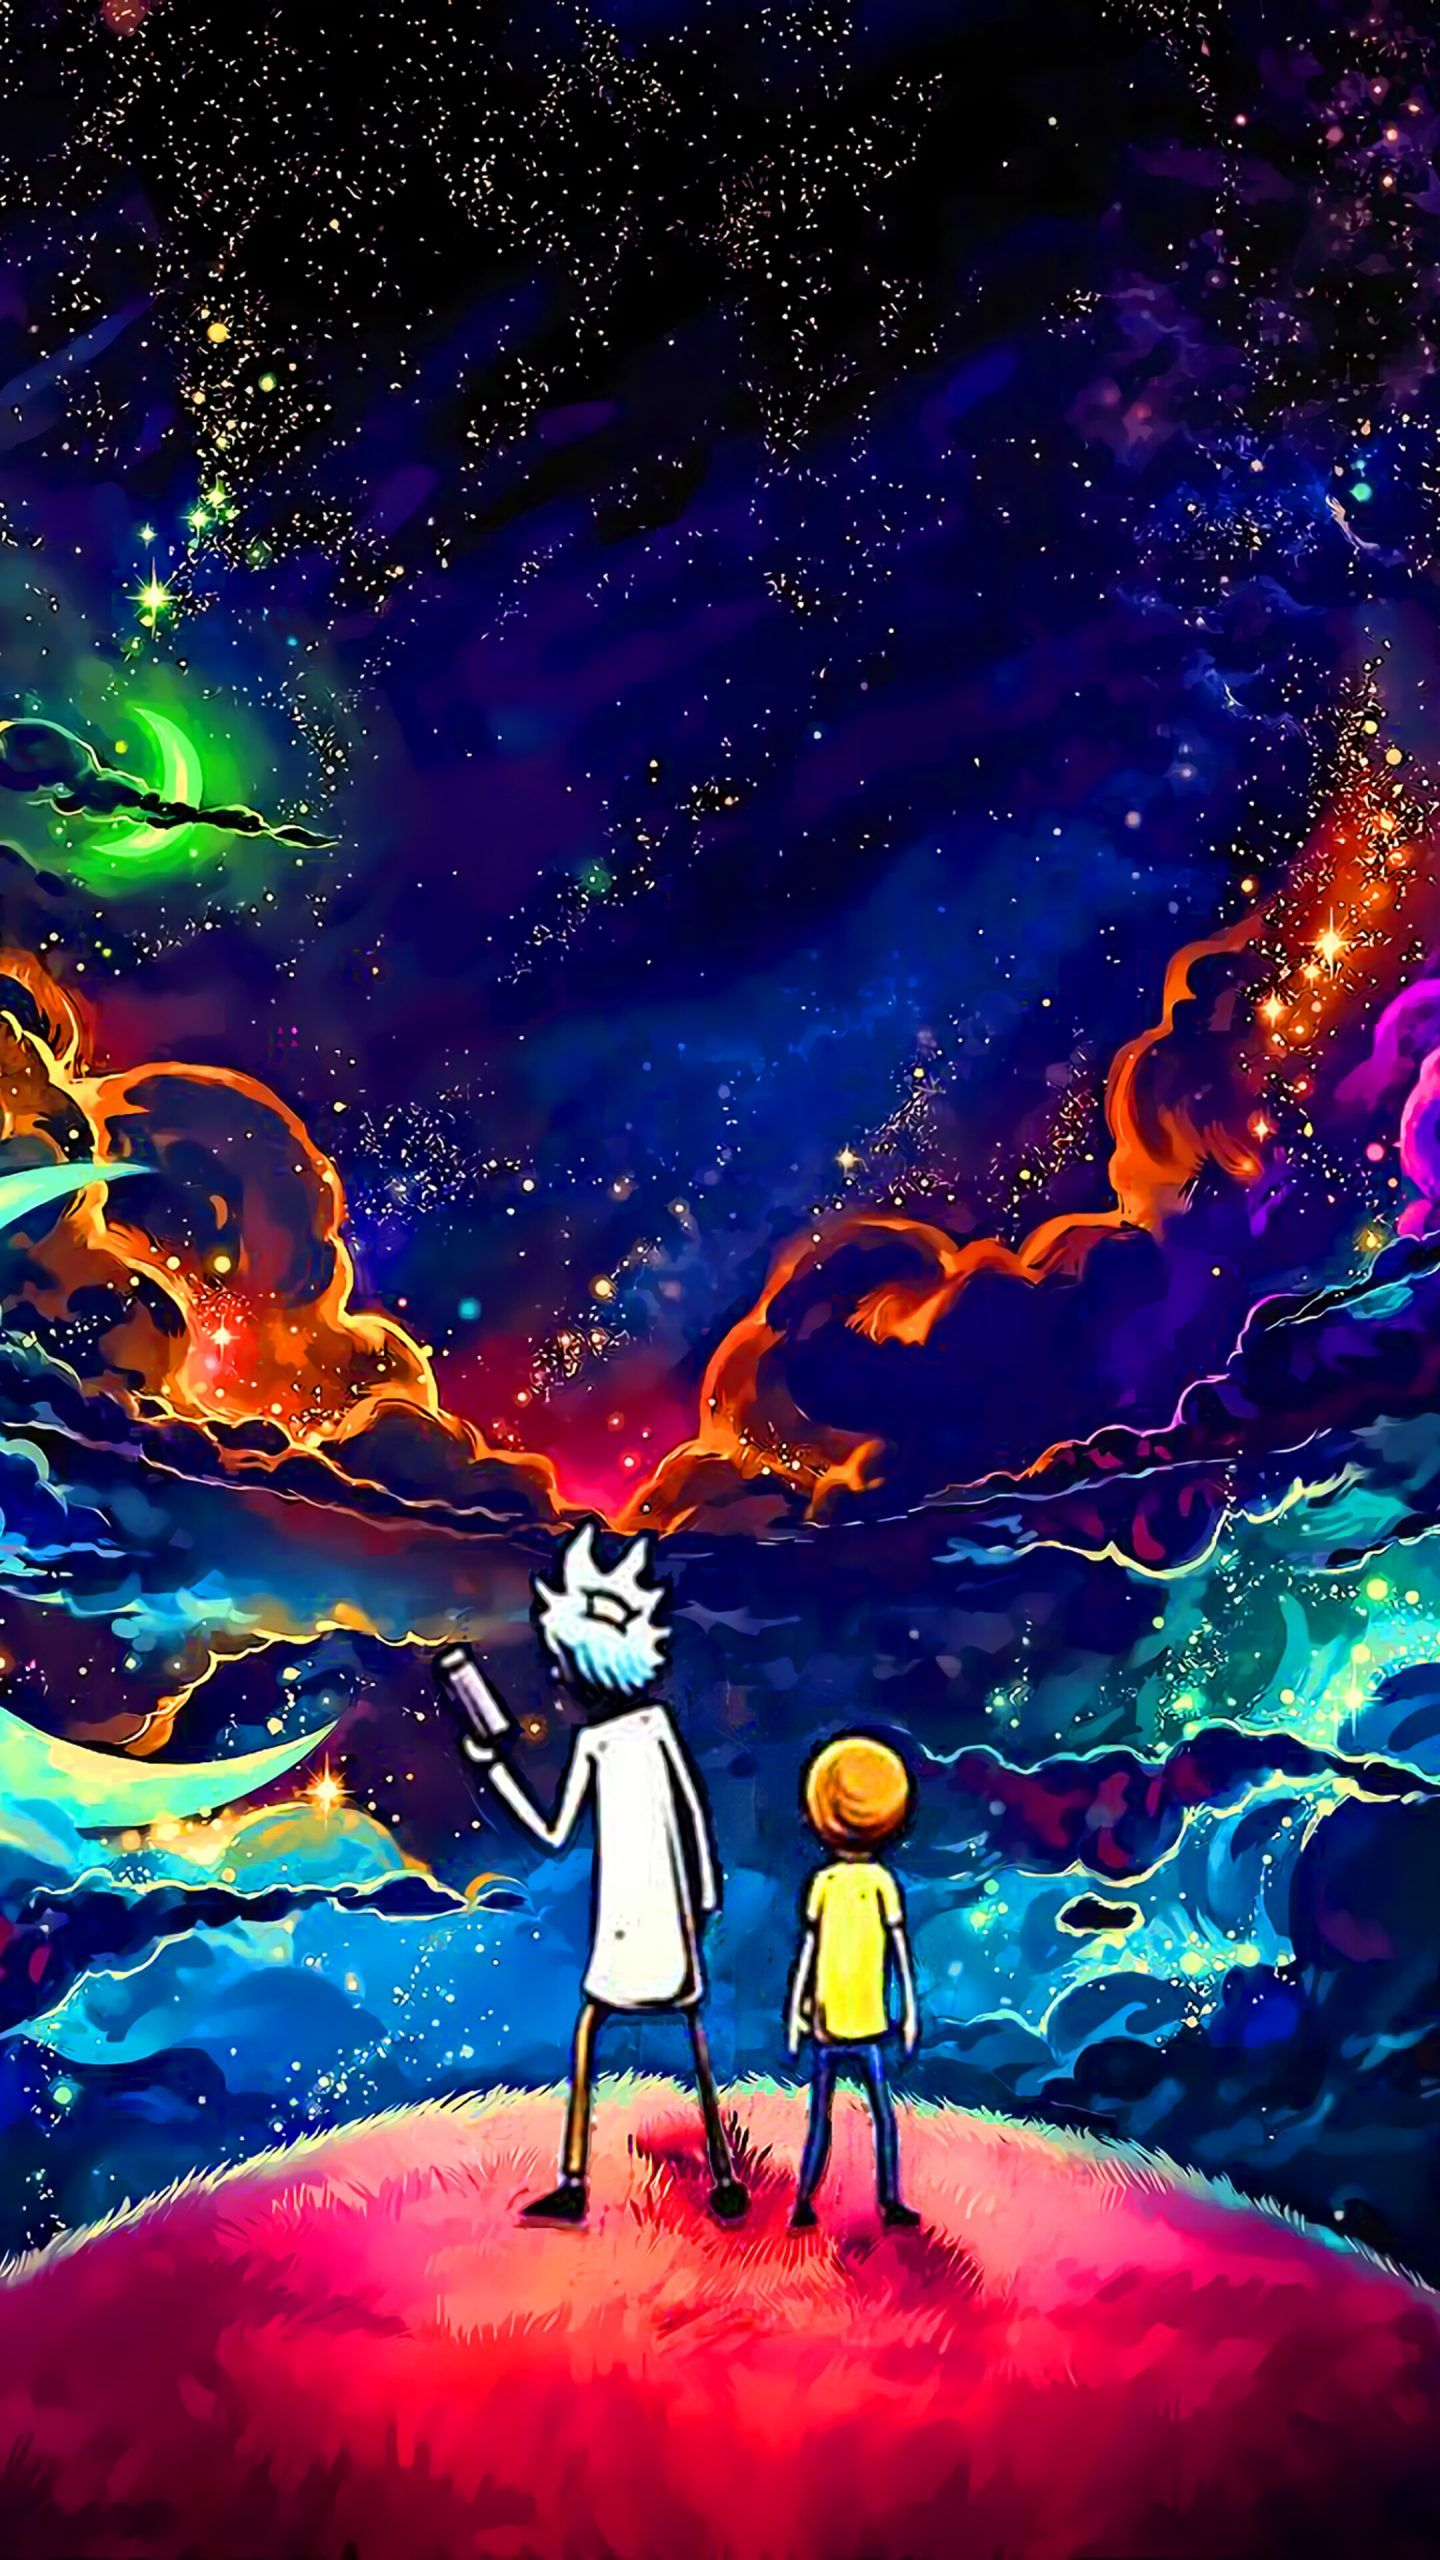 Rick And Morty Sky Stars 4k Wallpaper 5118 With Regard To Rick And Morty Wallpaper Portrait In 2020 Galaxy Wallpaper Man And Dog Planets Wallpaper